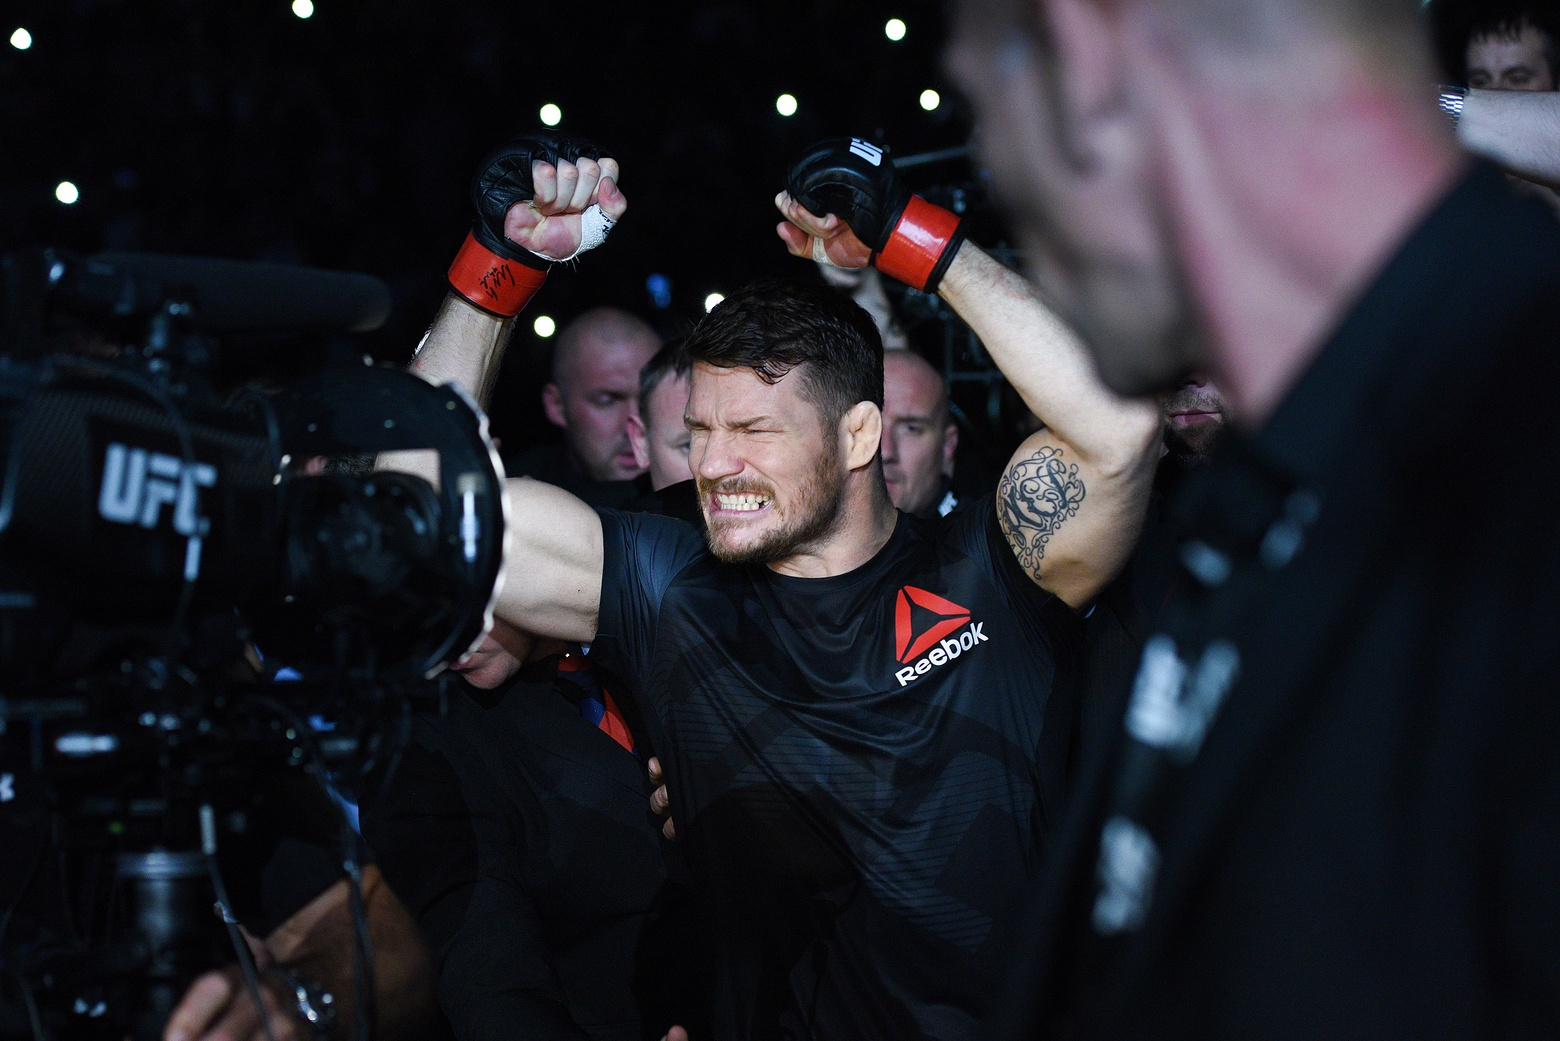 What's next for Bisping after first UFC title defense?